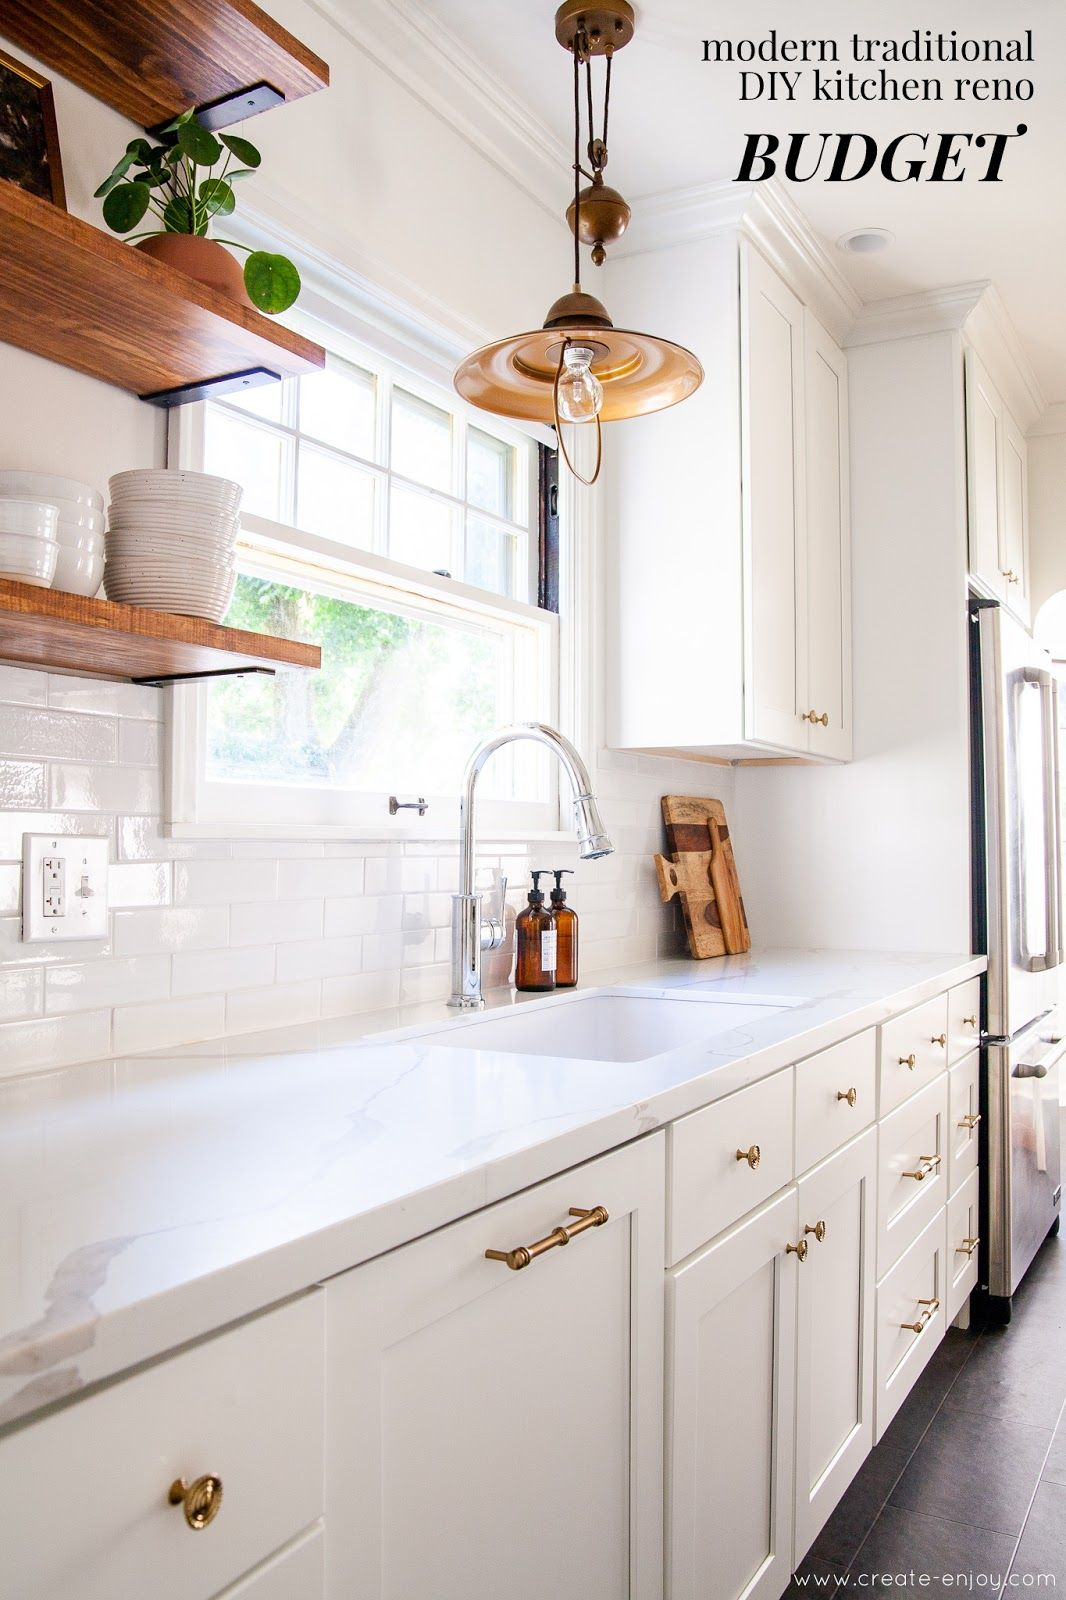 You Know You Want To Know Diy Kitchen Reno Budget Diy Kitchen Kitchen Reno Kitchen Decor